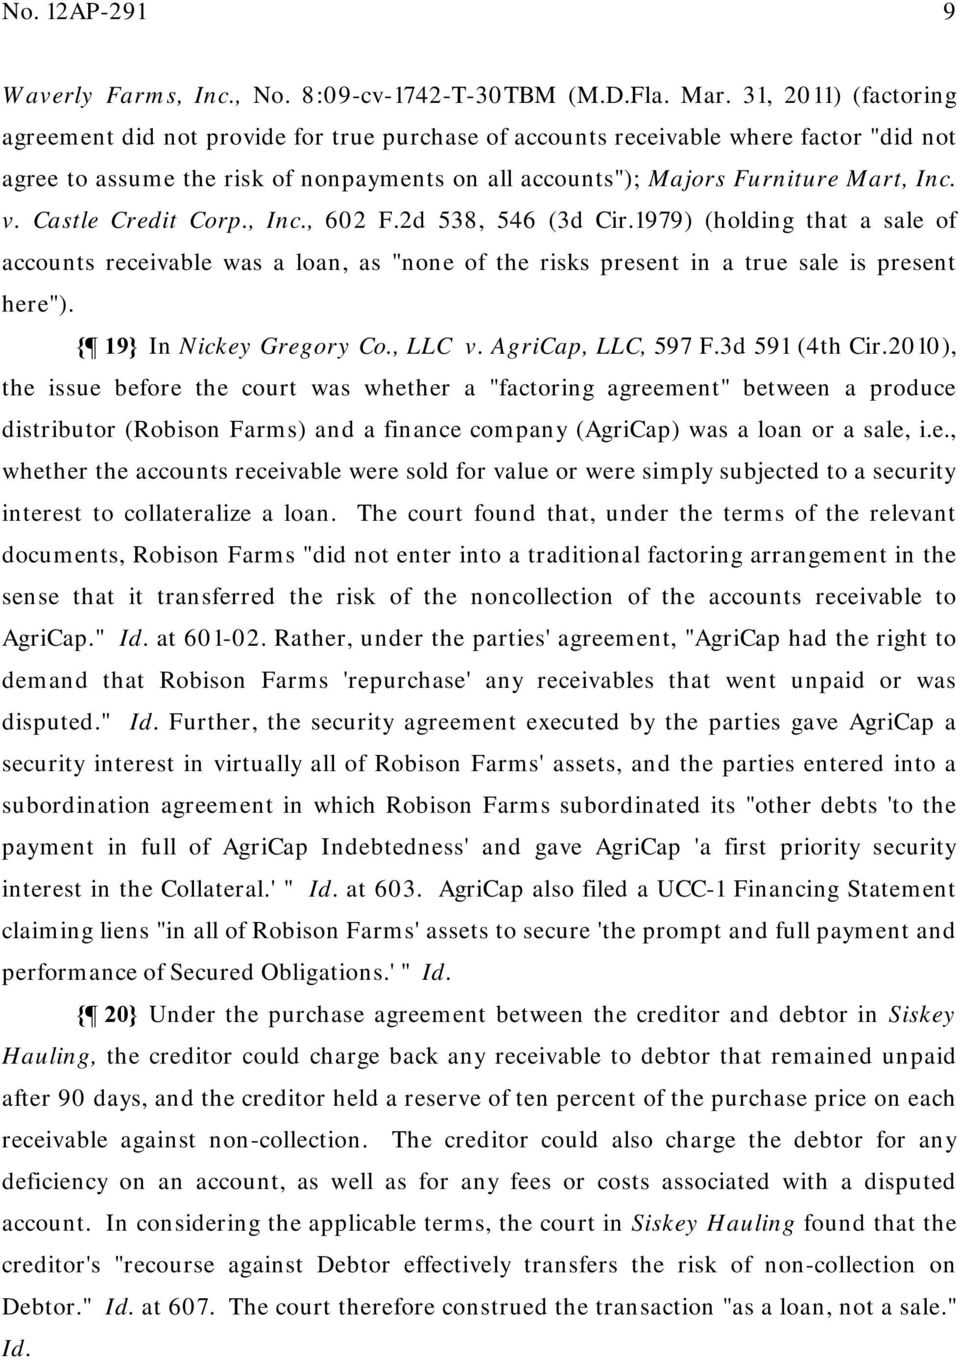 "Castle Credit Corp., Inc., 602 F.2d 538, 546 (3d Cir.1979) (holding that a sale of accounts receivable was a loan, as ""none of the risks present in a true sale is present here"")."